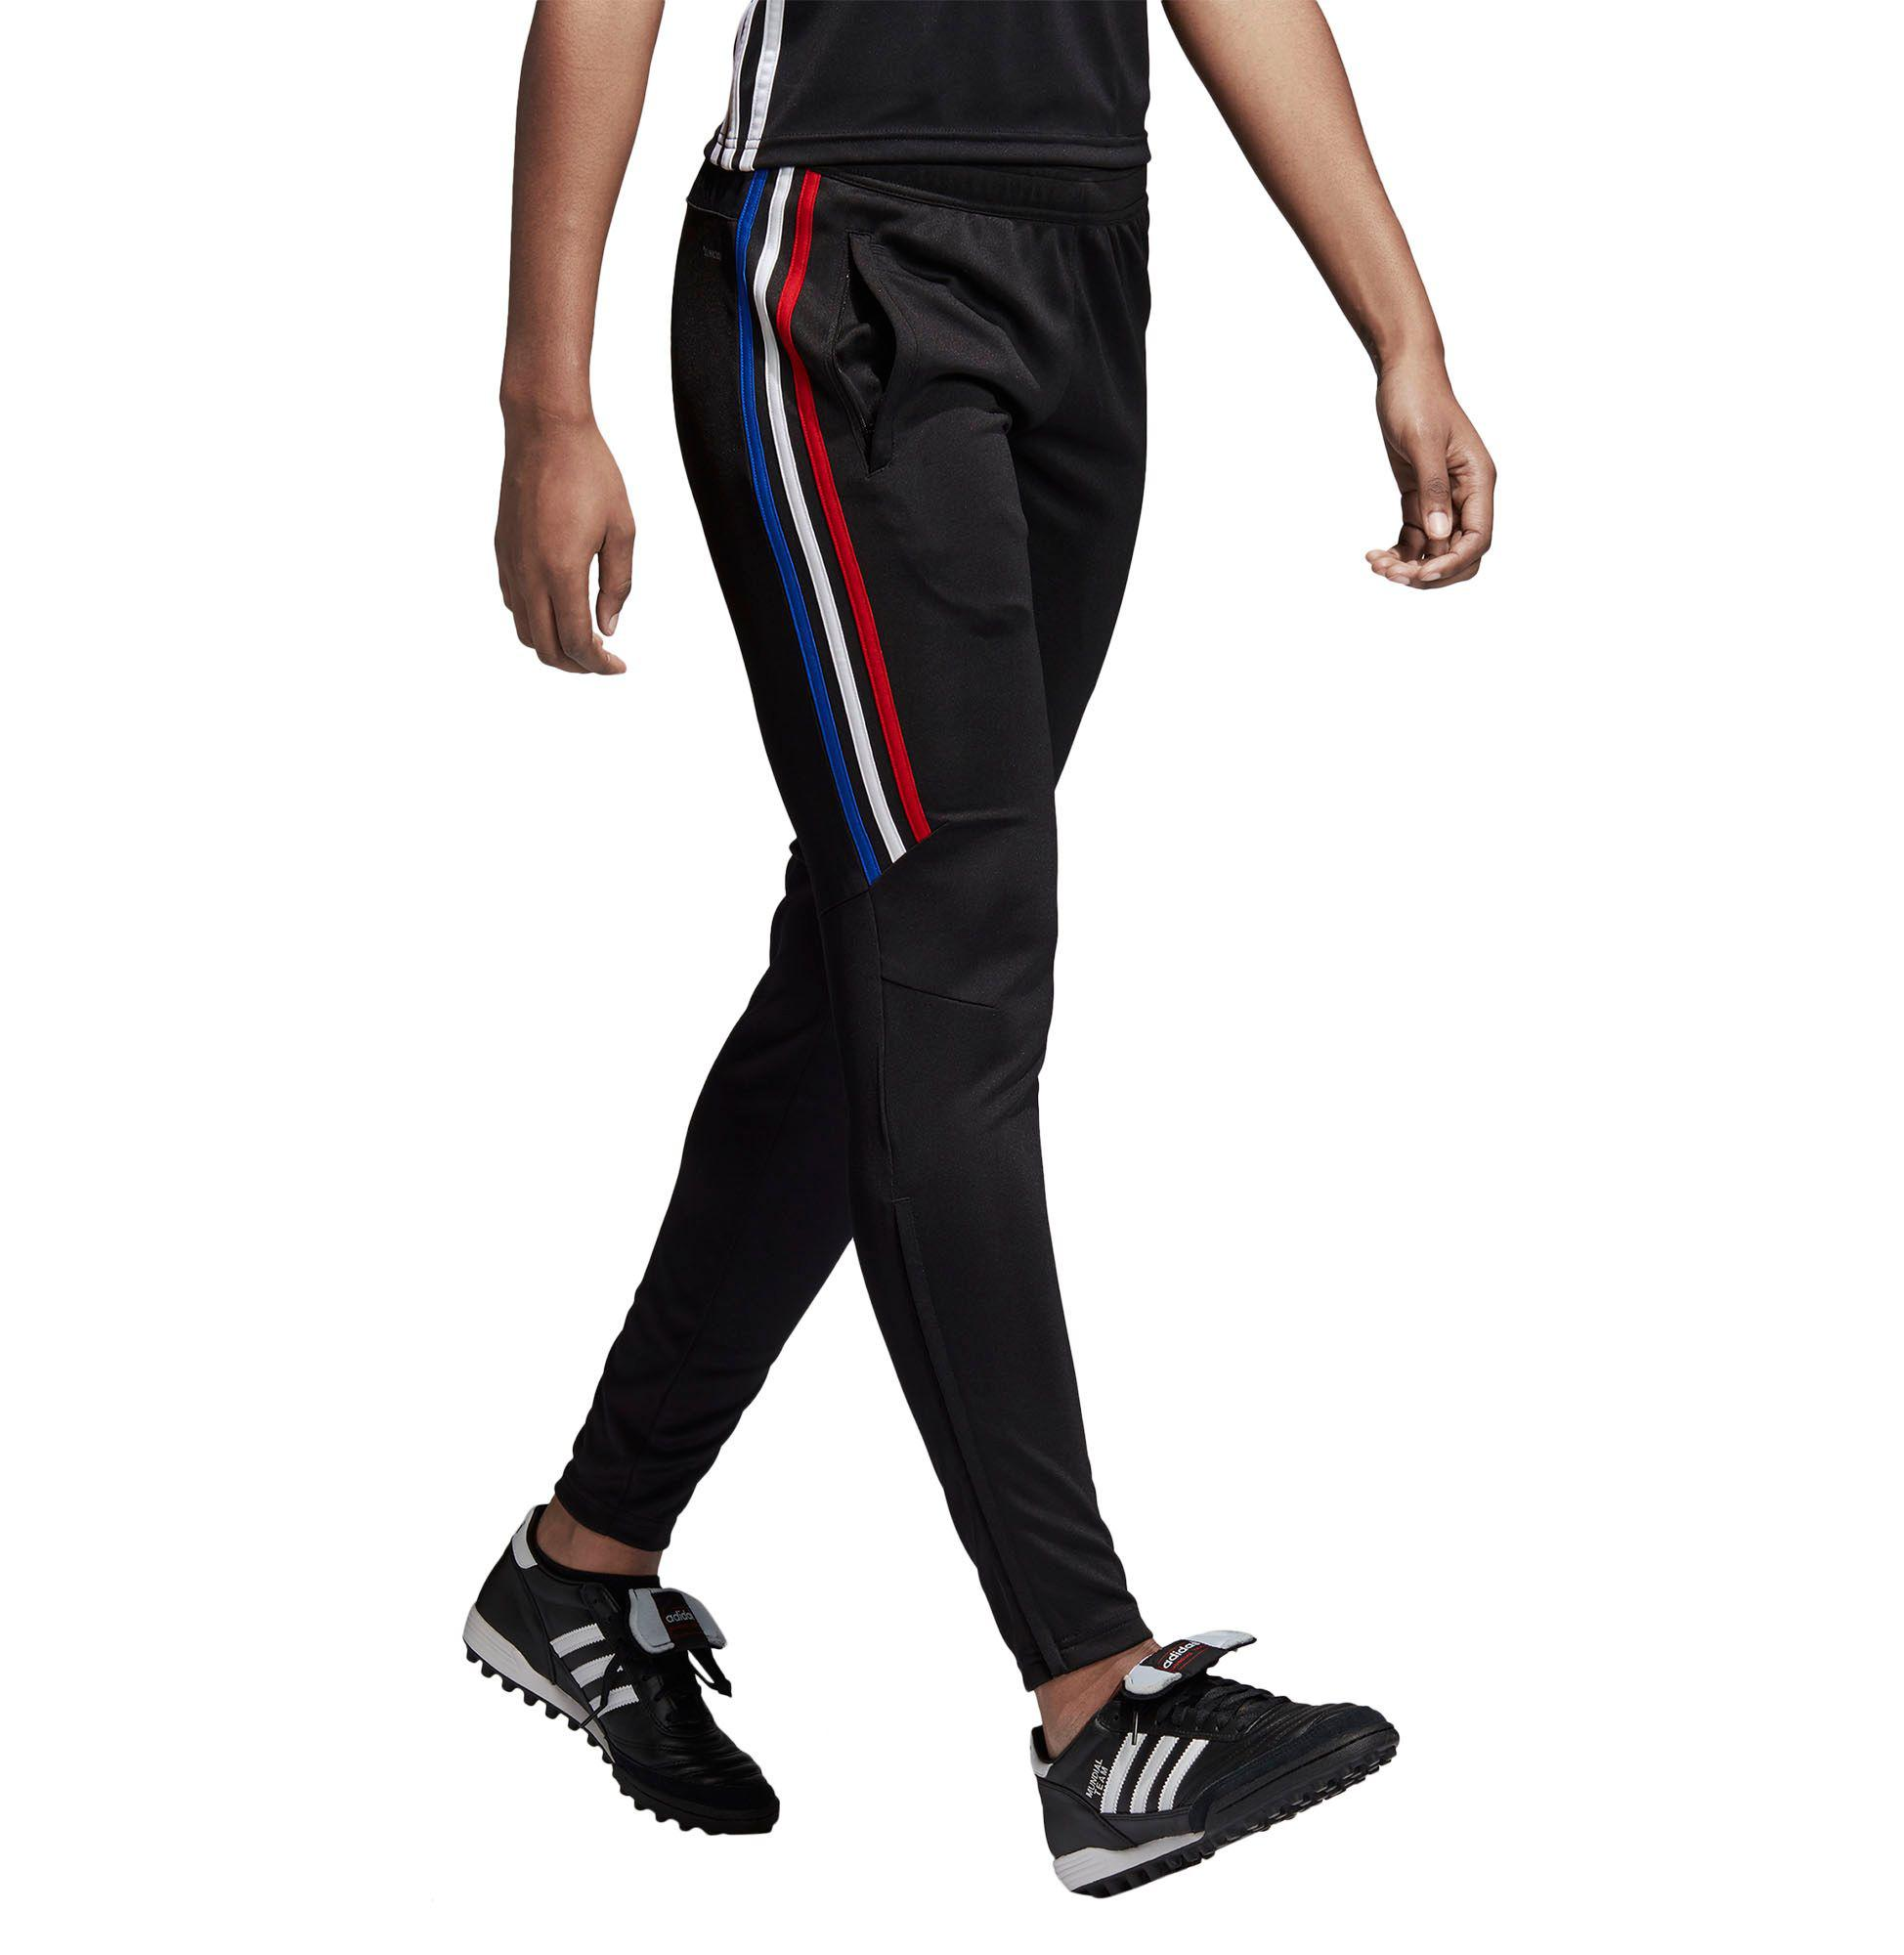 adidas Synthetic Tiro 17 Americana Soccer Training Pants in